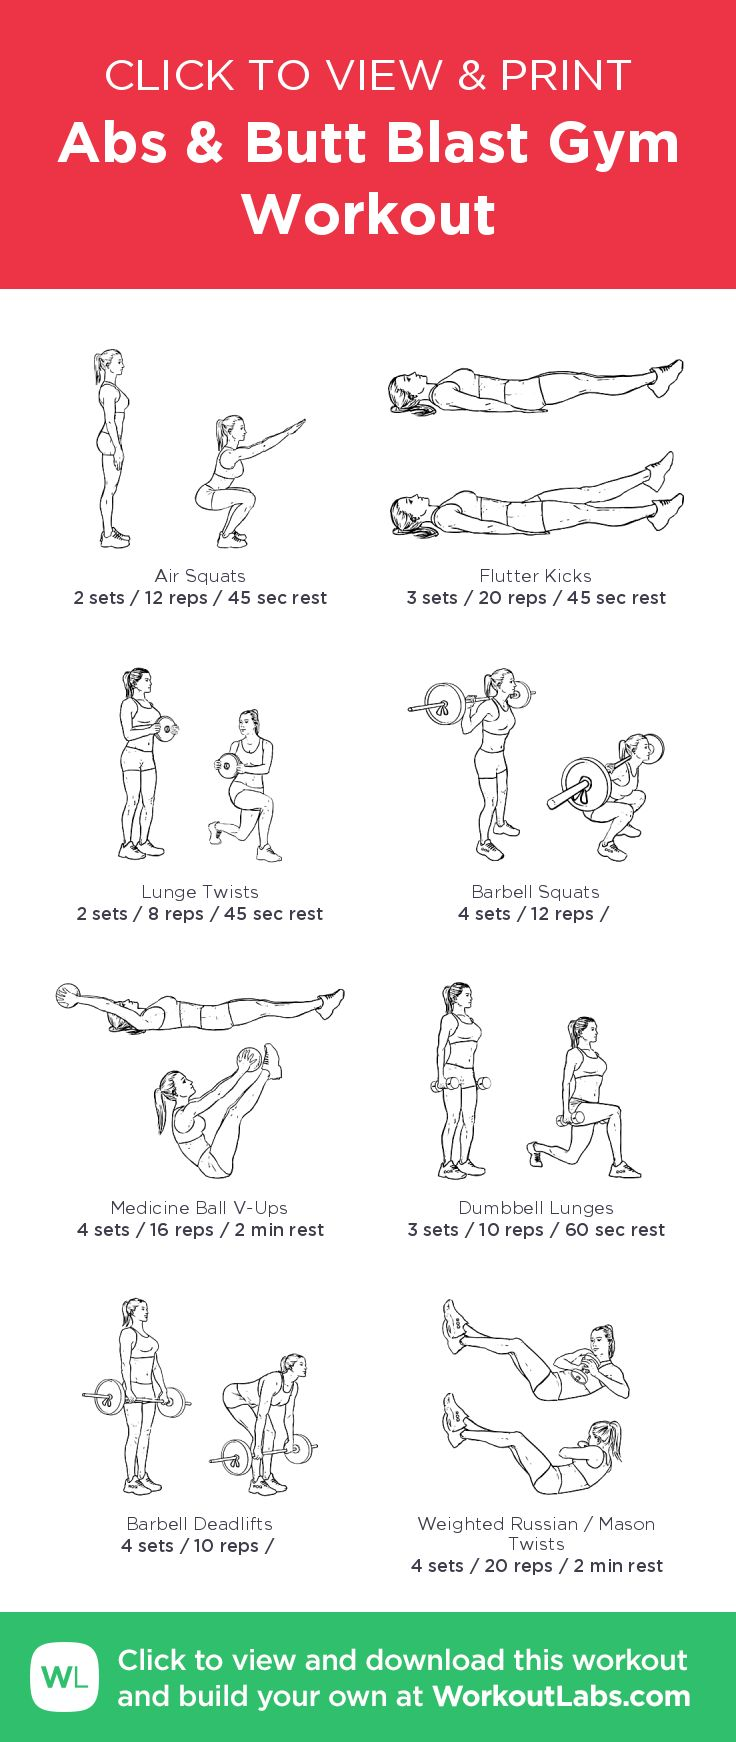 Abs & Butt Blast Gym Workout – illustrated exercise plan created at WorkoutLabs.com/Fit • Click for a printable PDF and to build your own #customworkout